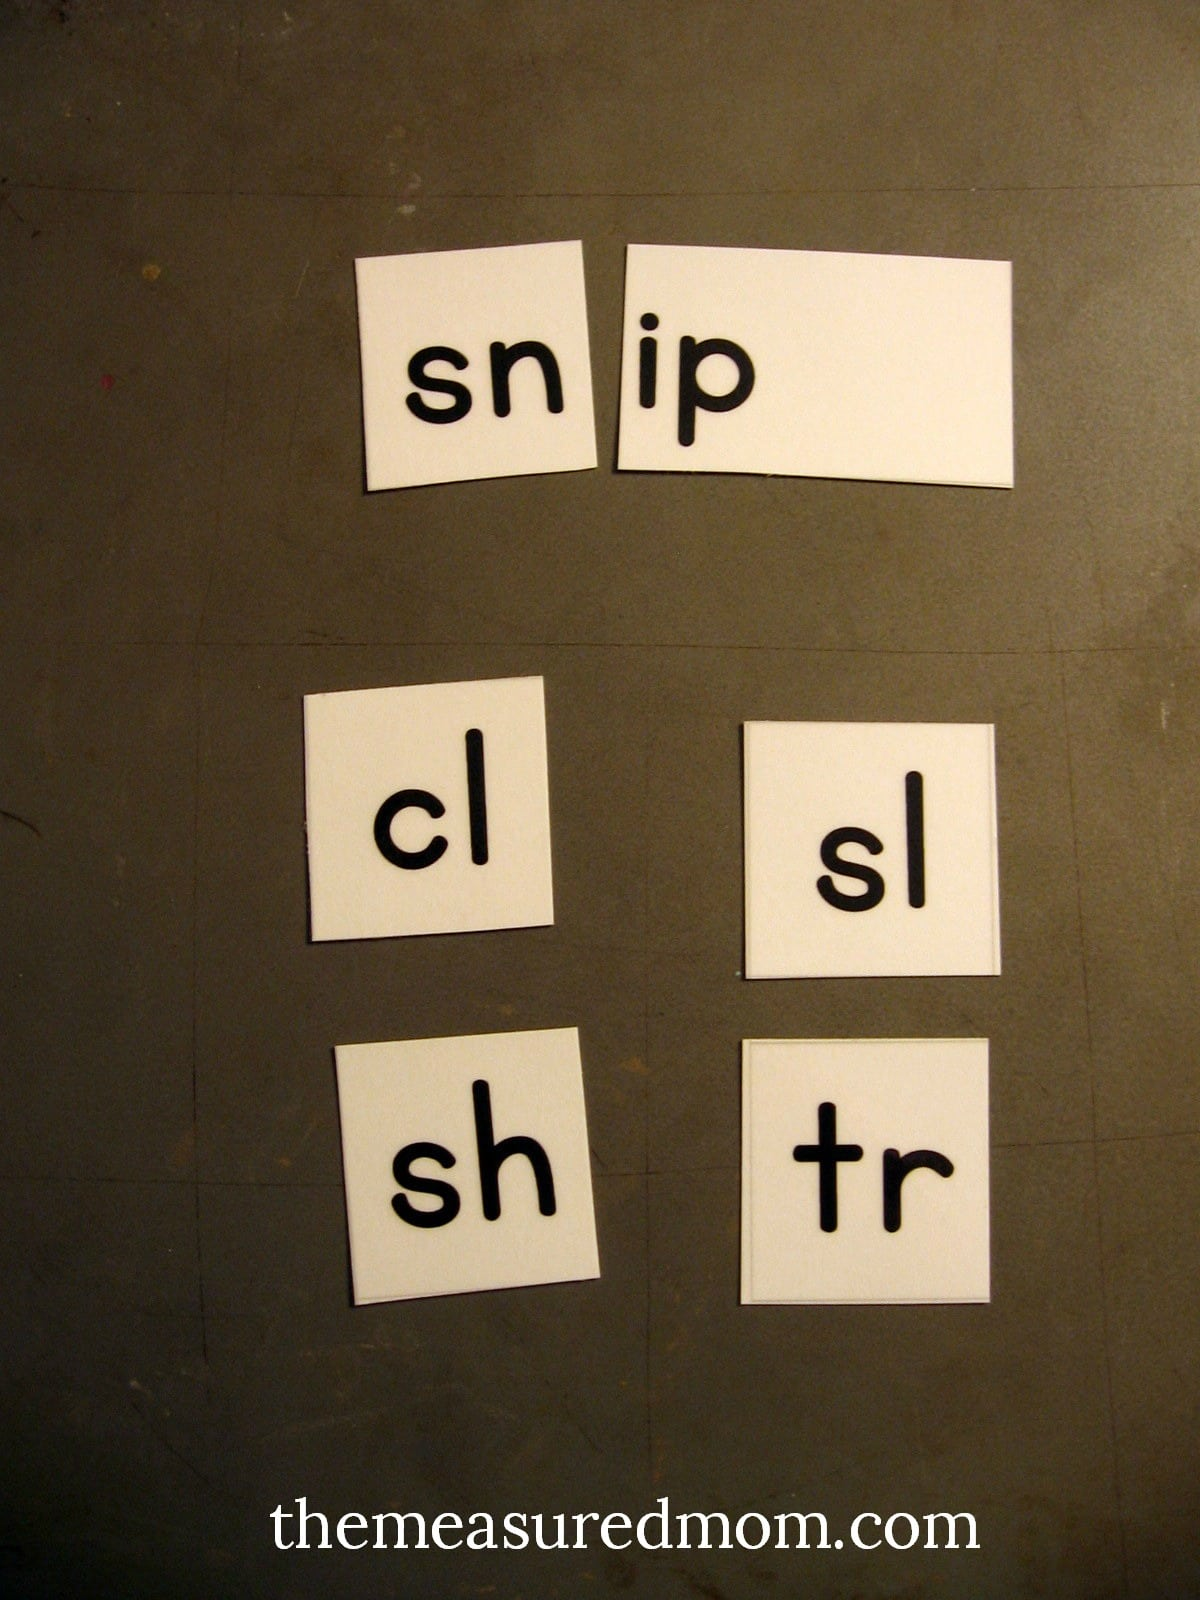 Get these free printable letter tiles for making words!